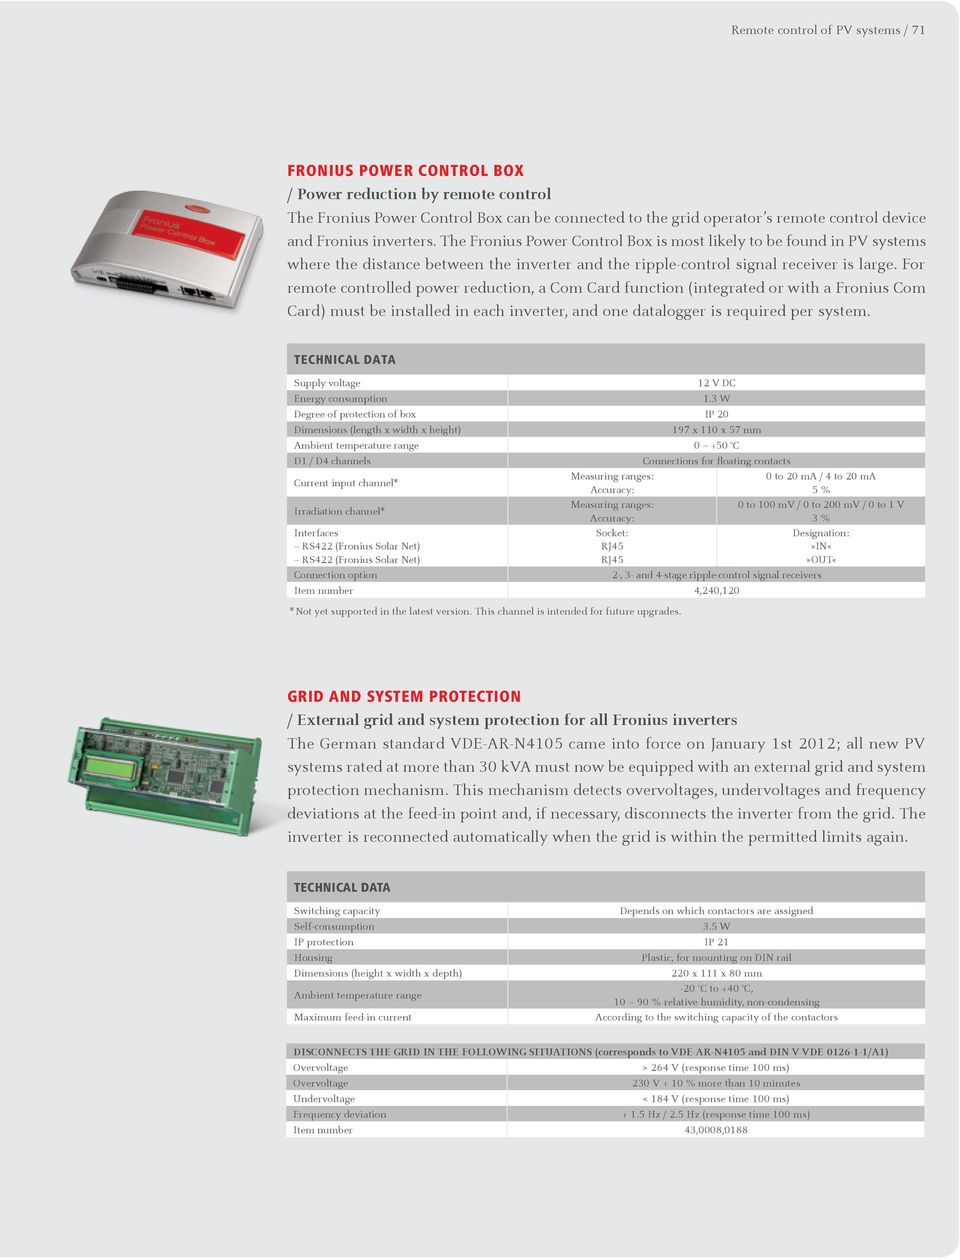 For remote controlled power reduction, a Com Card function (integrated or with a Fronius Com Card) must be installed in each inverter, and one datalogger is required per system.